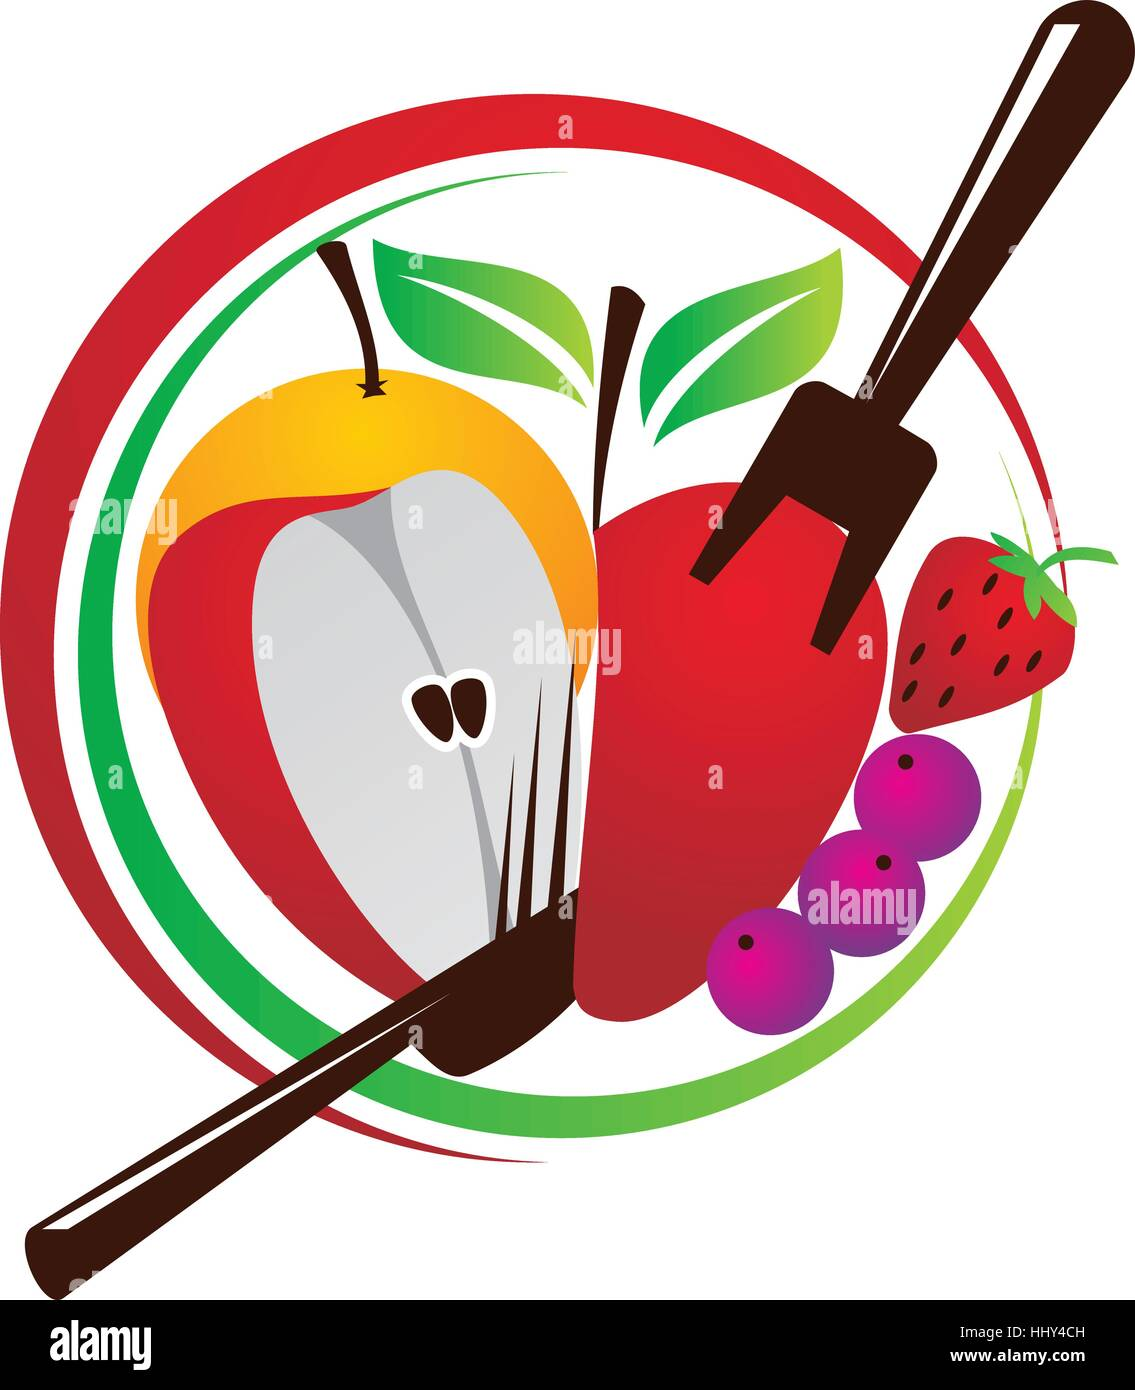 For restaurant pictures graphics illustrations clipart photos - Healthy Food Restaurant